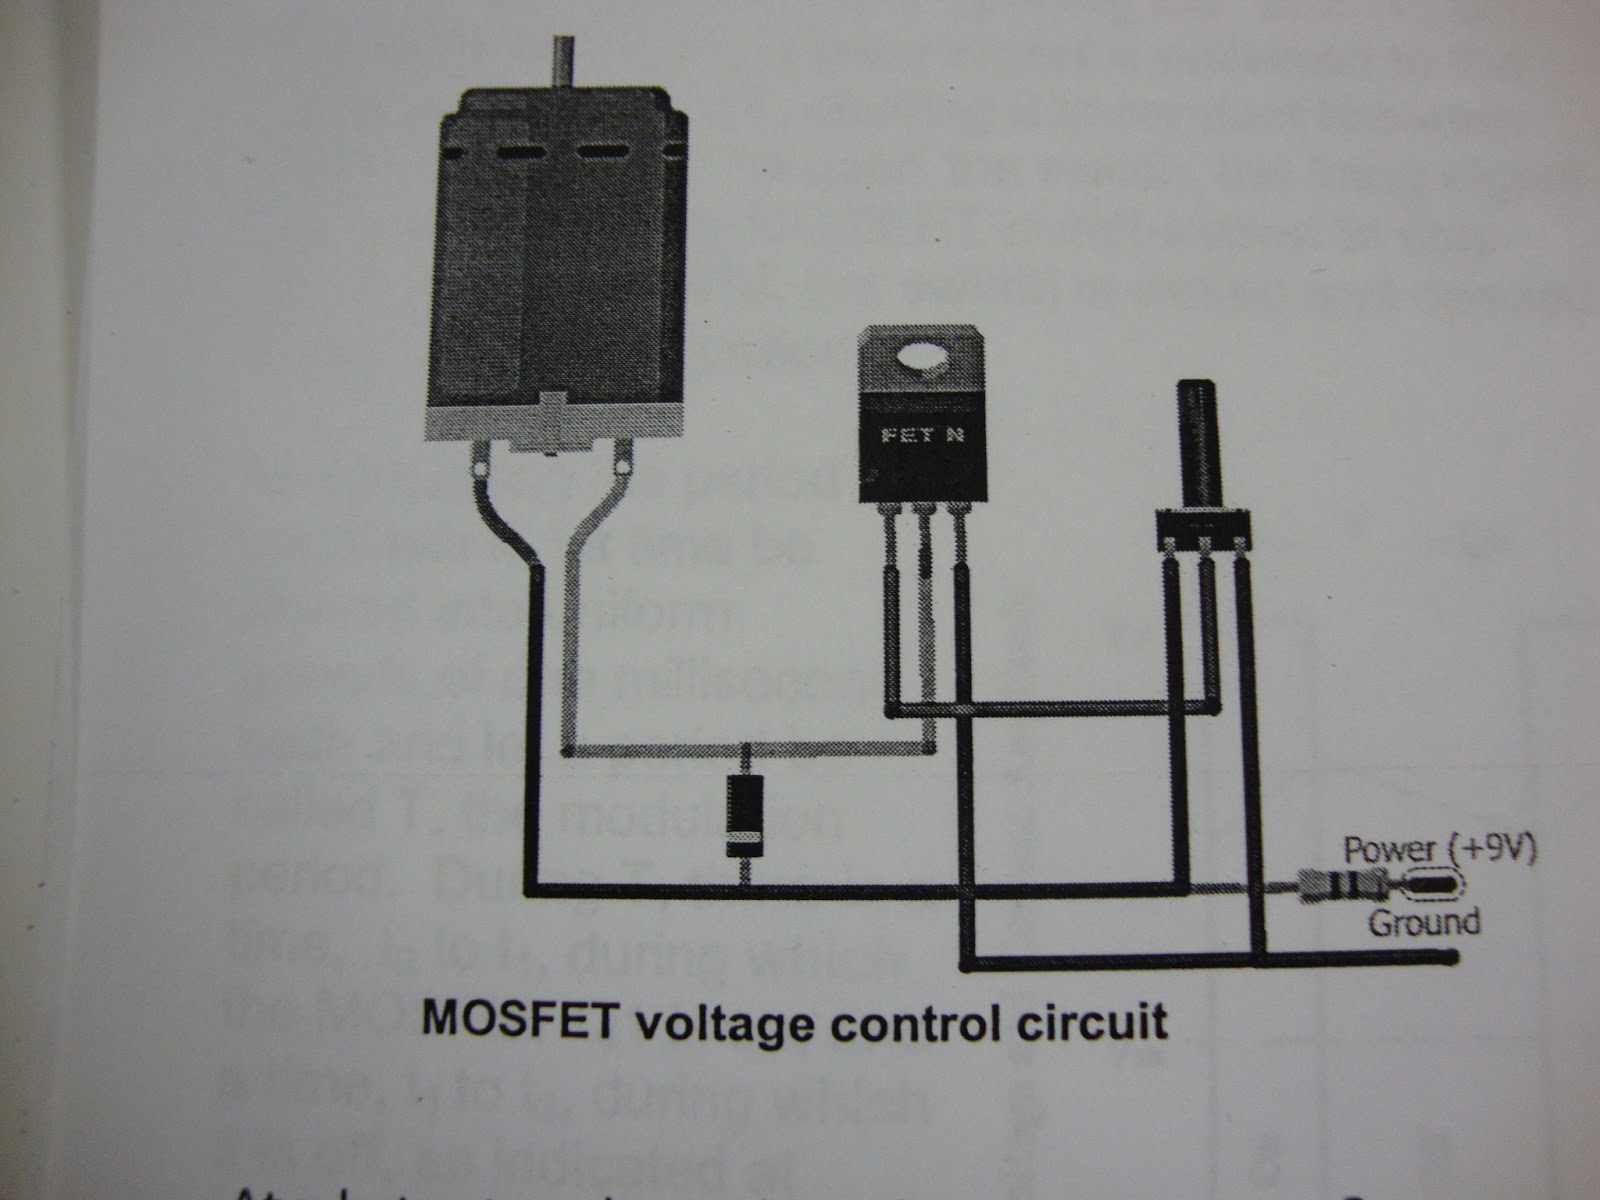 Engineering44 rkwok: Controlling Electric Motor Using MOSFET